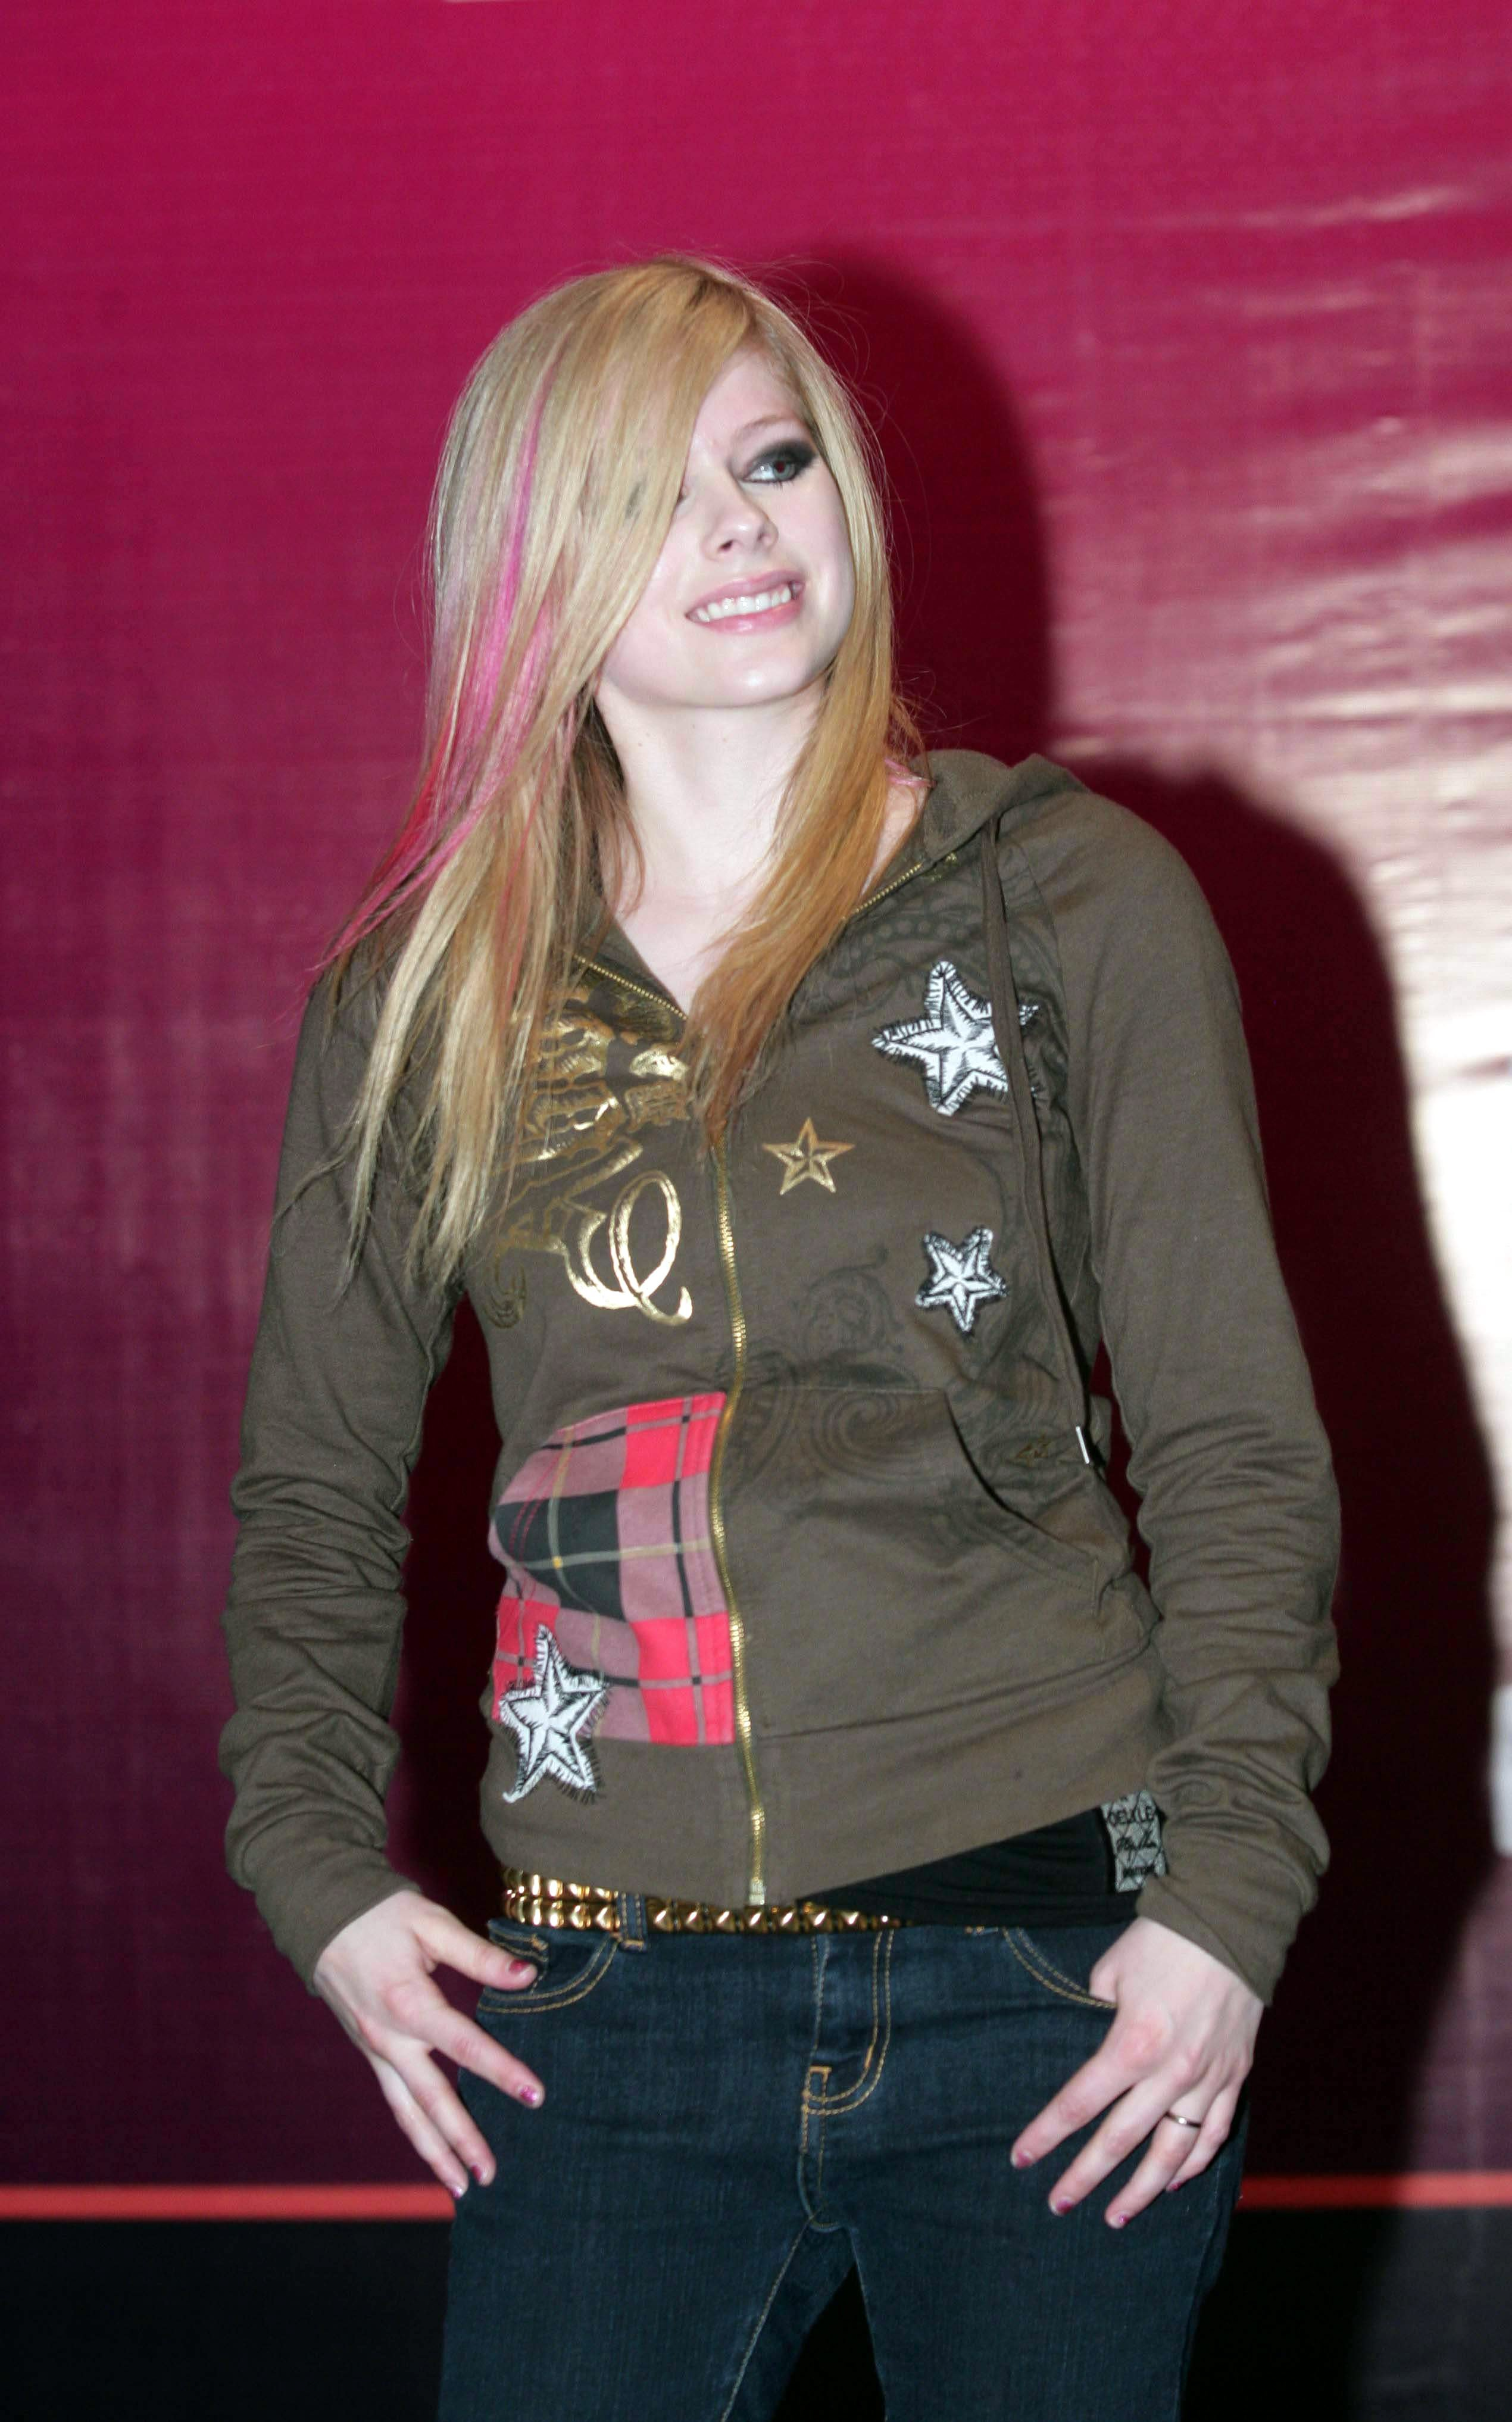 21831_Celebutopia-Avril_Lavigne_poses_as_a_charity_goodwill_ambassador_during_a_charity_event-01_122_1023lo.jpg